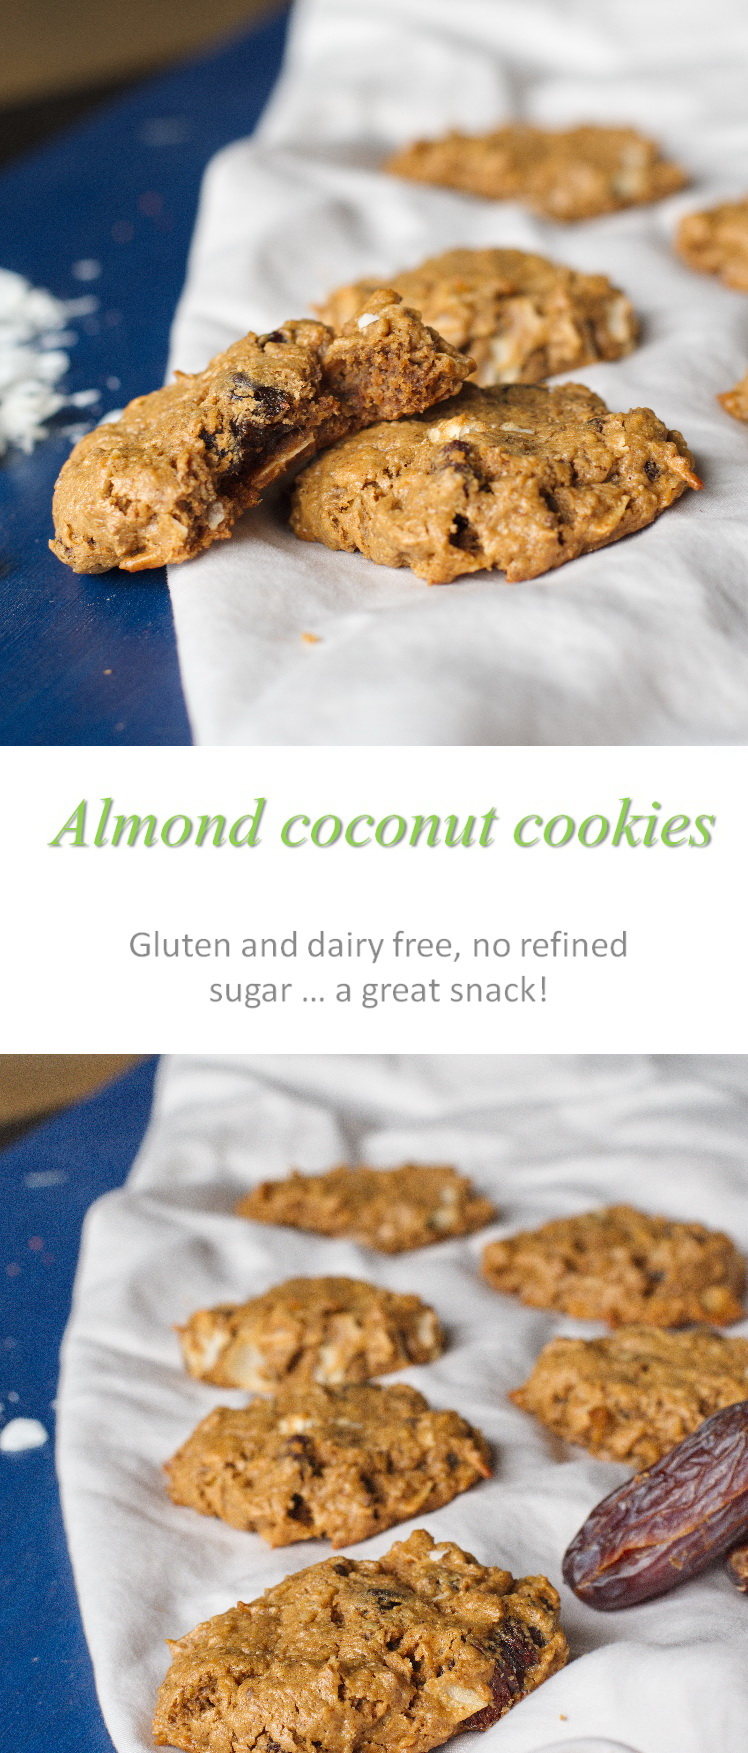 Gluten, dairy and refined sugar-free chewy and moist almond coconut cookies, with the added sweetness of dates! #cookies